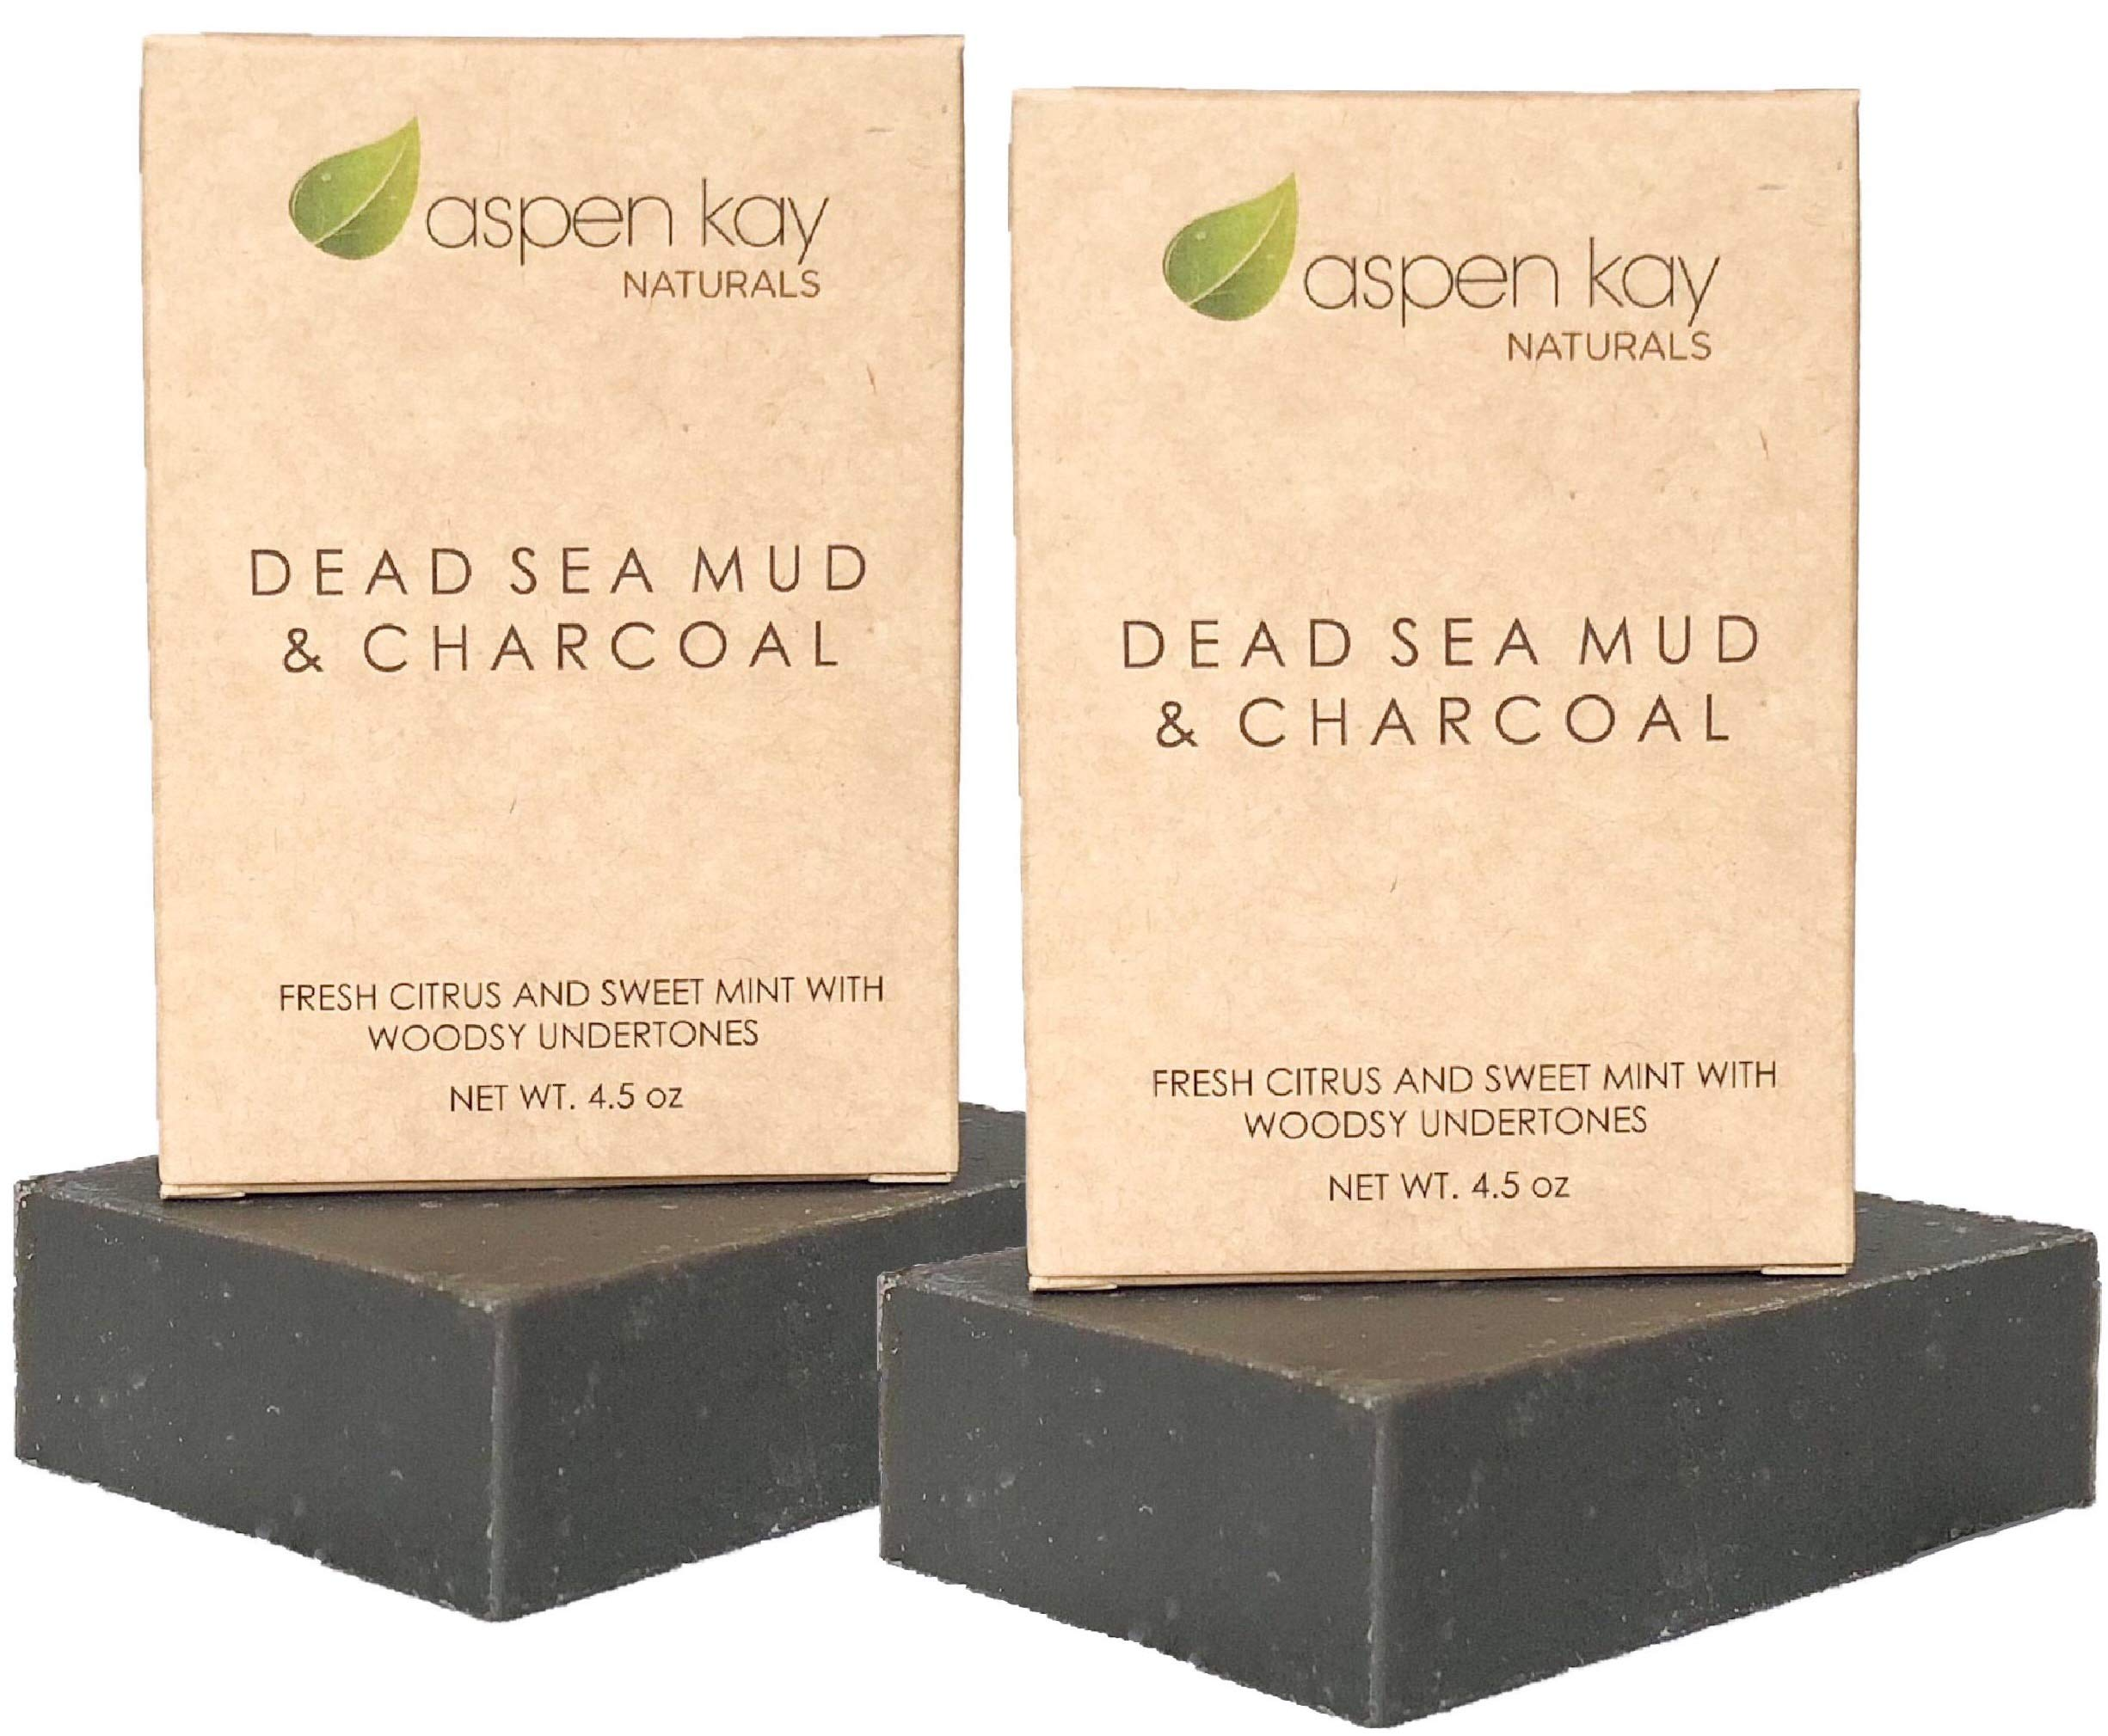 Dead Sea Mud Soap Bar With Activated Charcoal (2 Bar Pack) 100% Natural & Organic. With Therapeutic Grade Essential Oils. Face Soap or Body Soap. Chemical Free. Each Bar is 4.5 oz by Aspen Kay Naturals